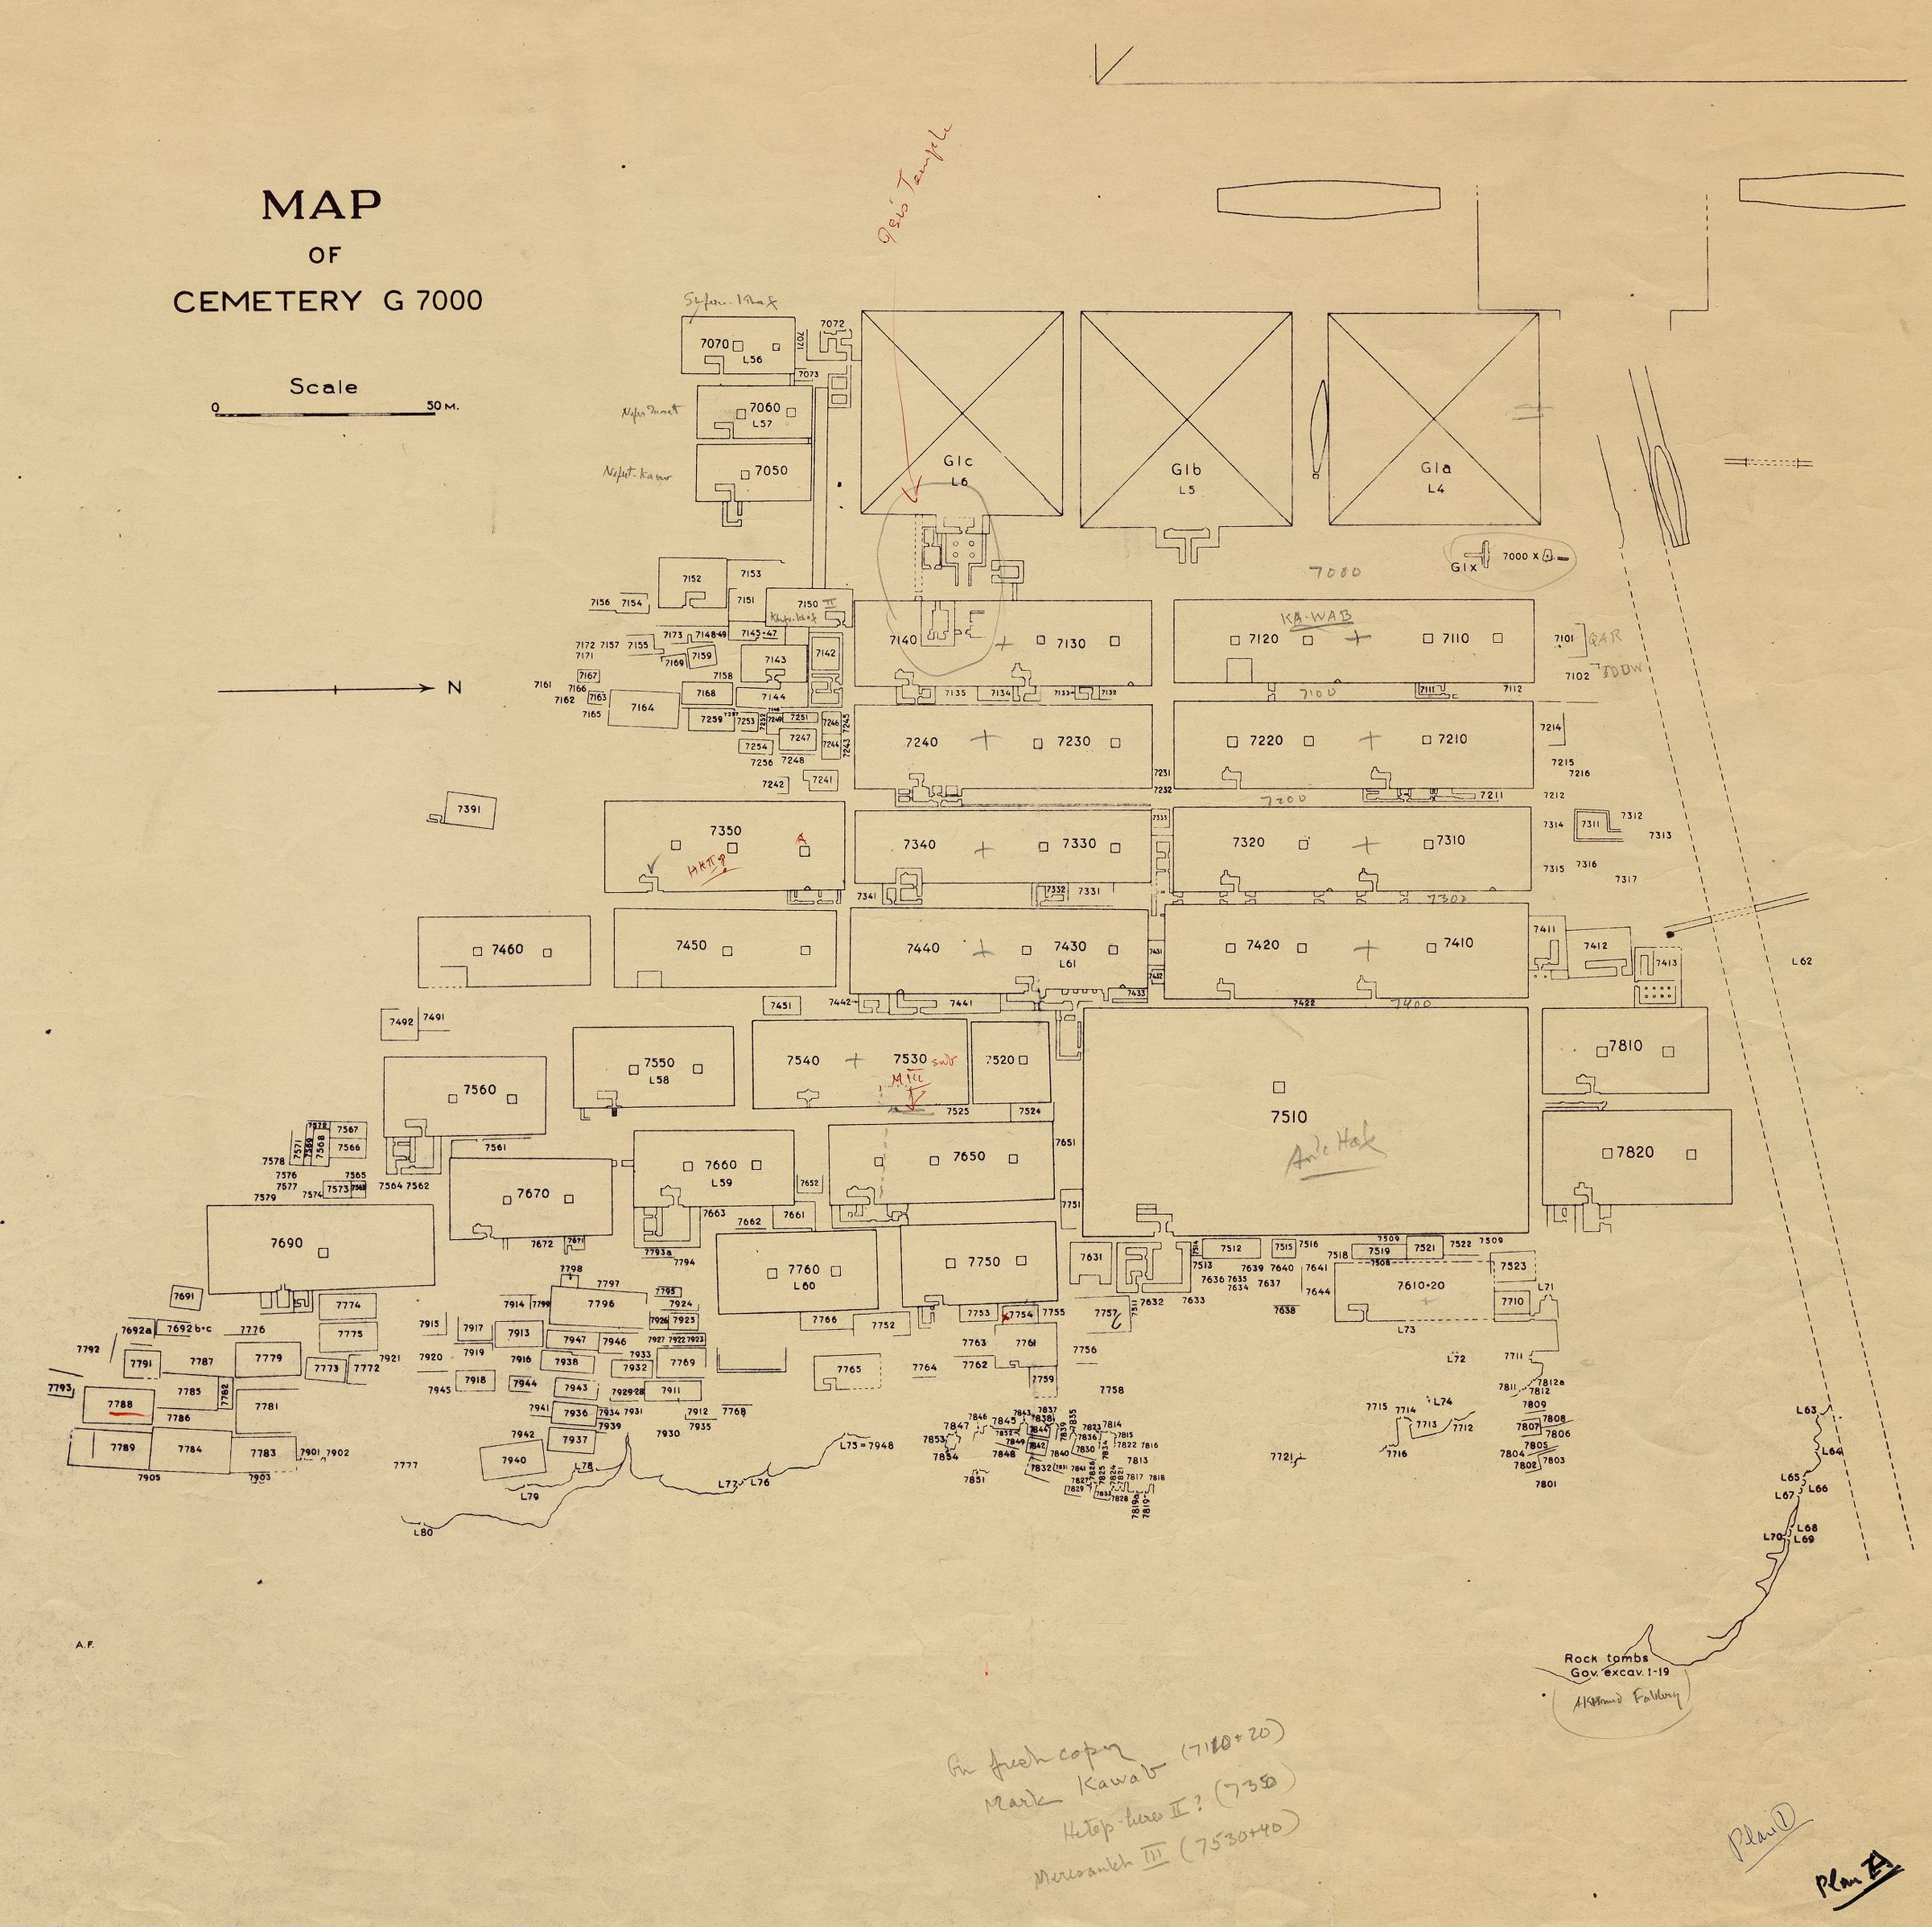 Maps and plans: Plan of Cemetery G 7000